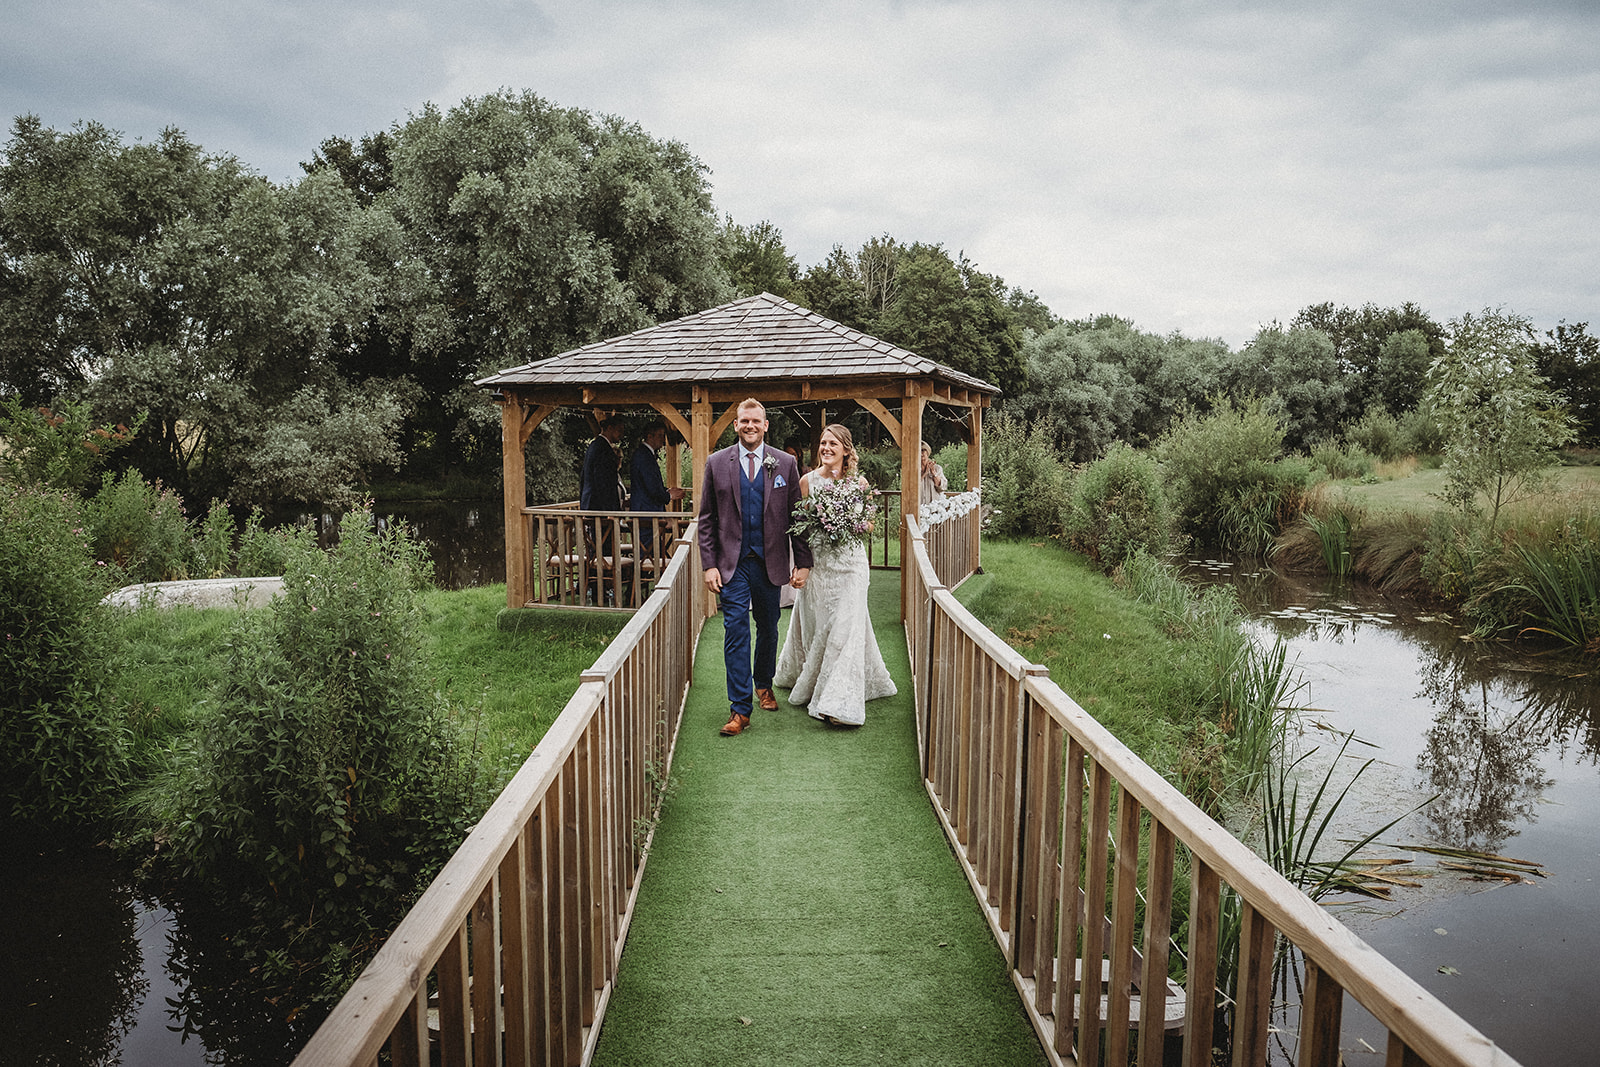 Tuesday Weddings at Furtho Manor Farm